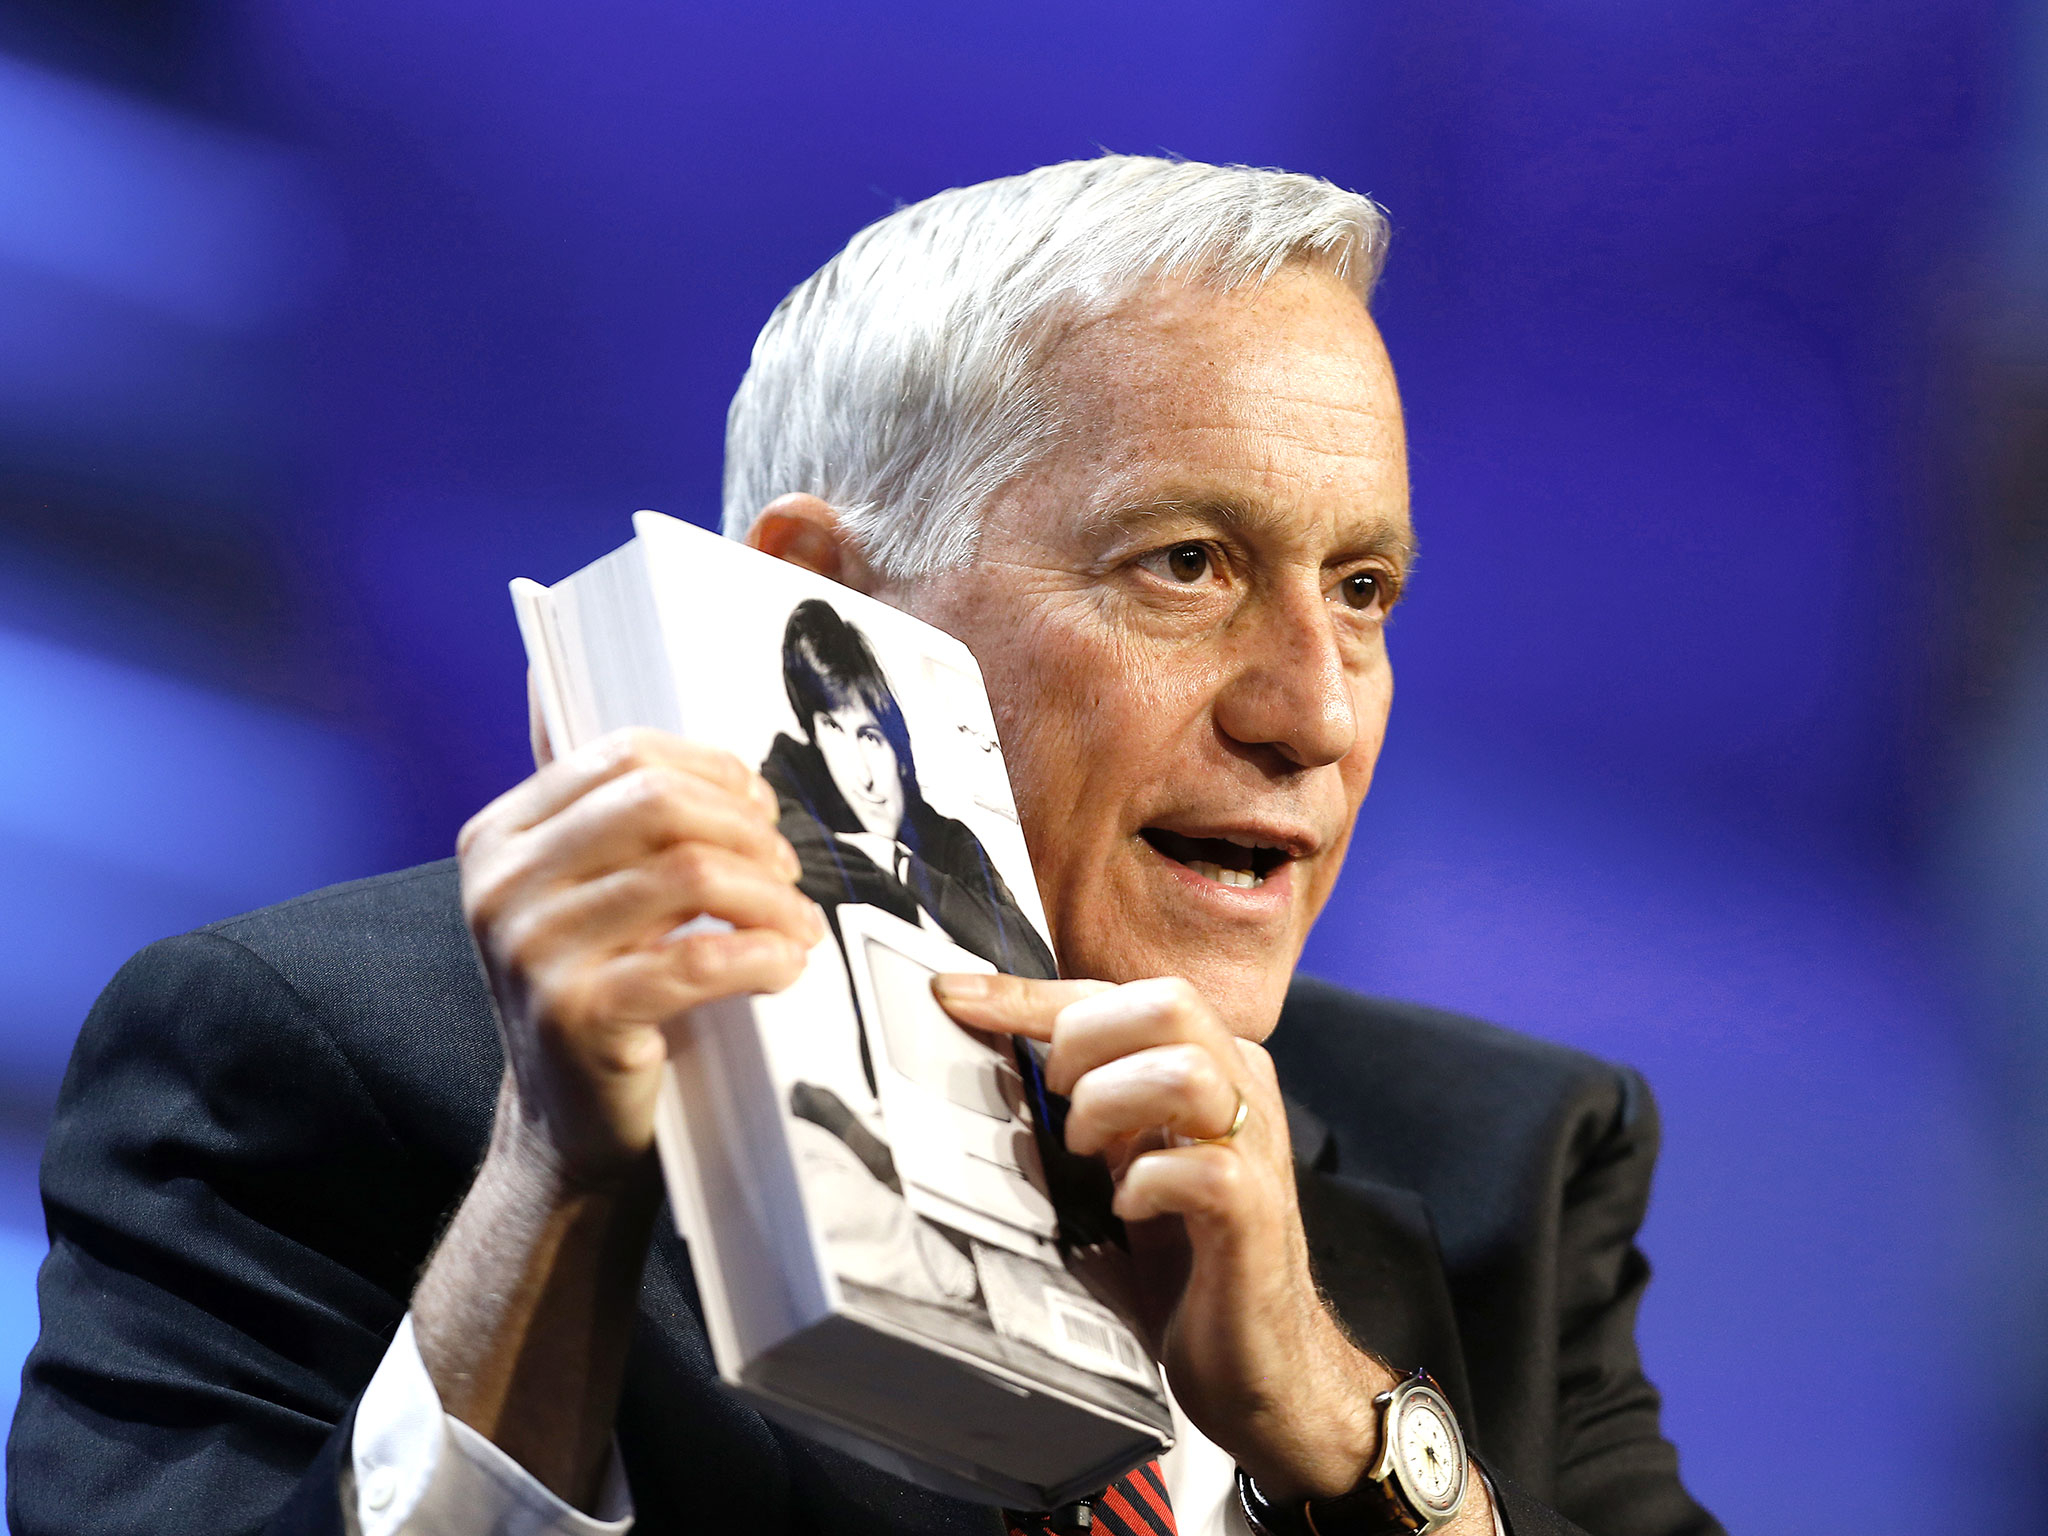 Walter Isaacson, chief executive officer and president of Aspen Institute, talks about his book, Steve Jobs, in 2013. Photo: Aaron M. Sprecher/Bloomberg